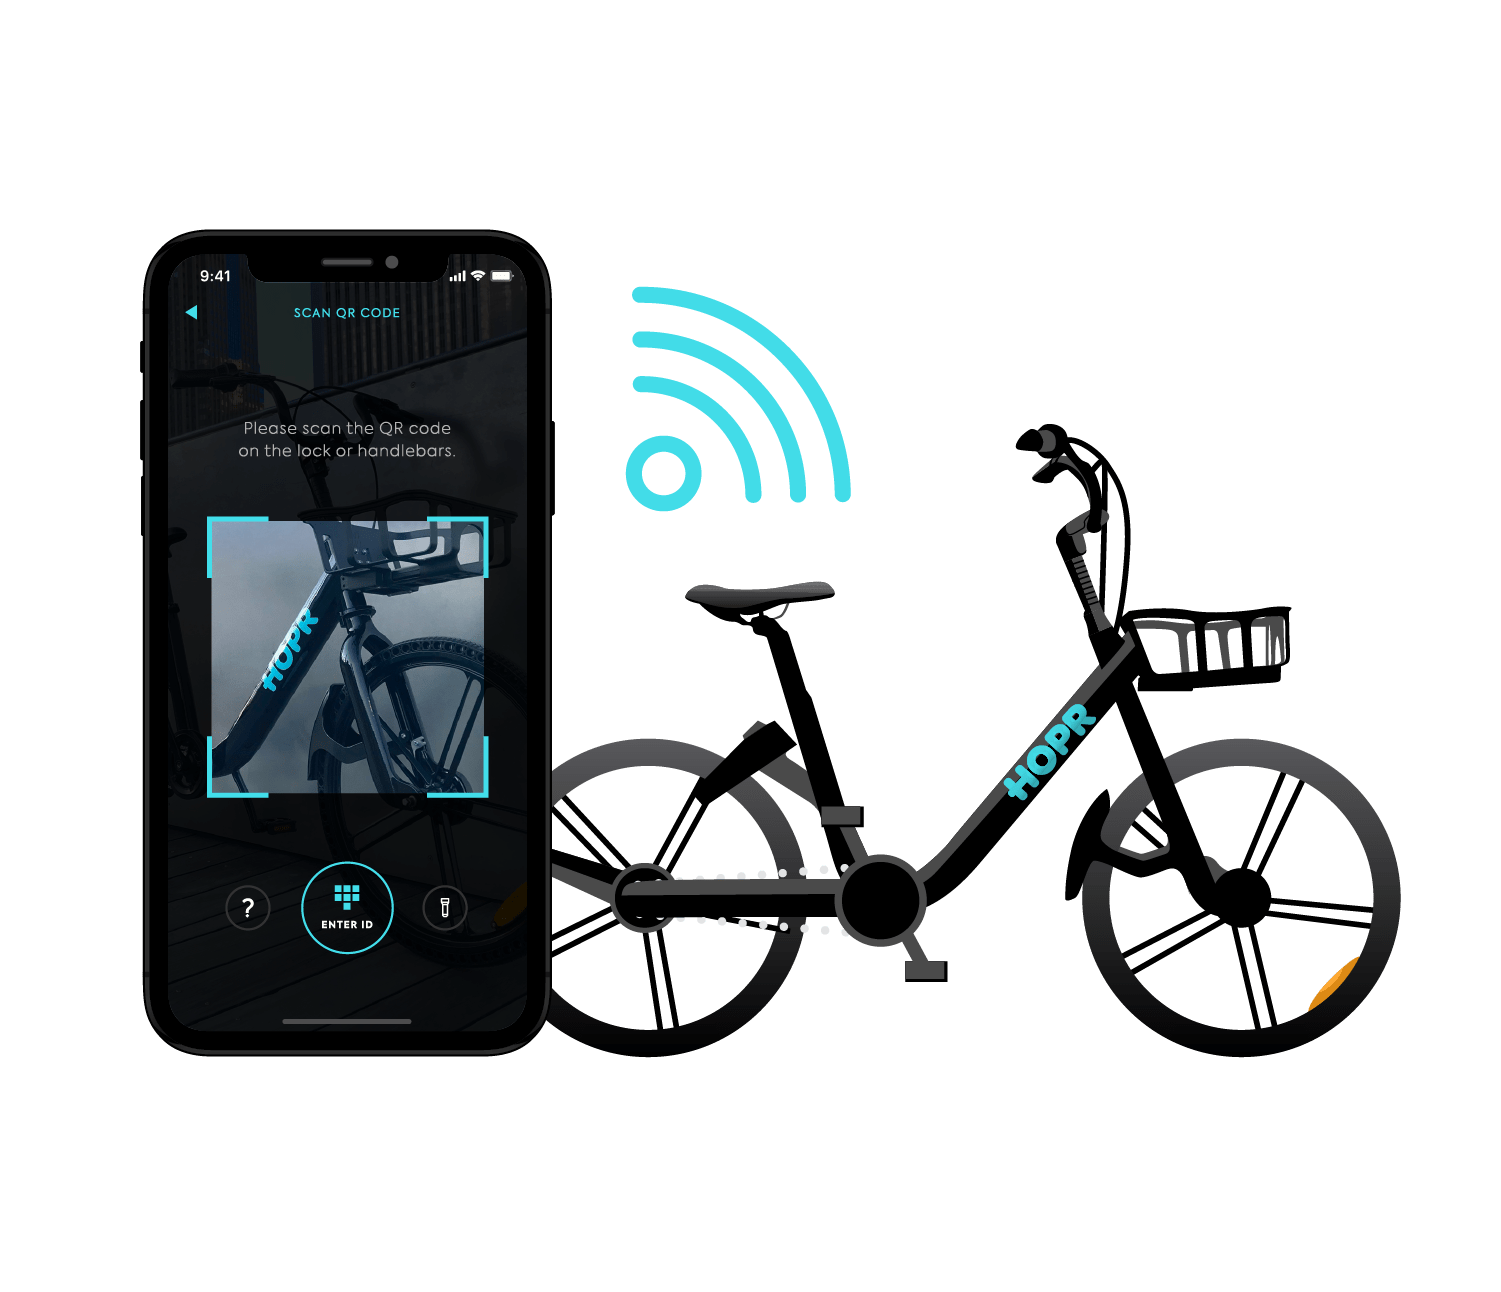 unlock your bike with the HOPR Transit App and start your ride